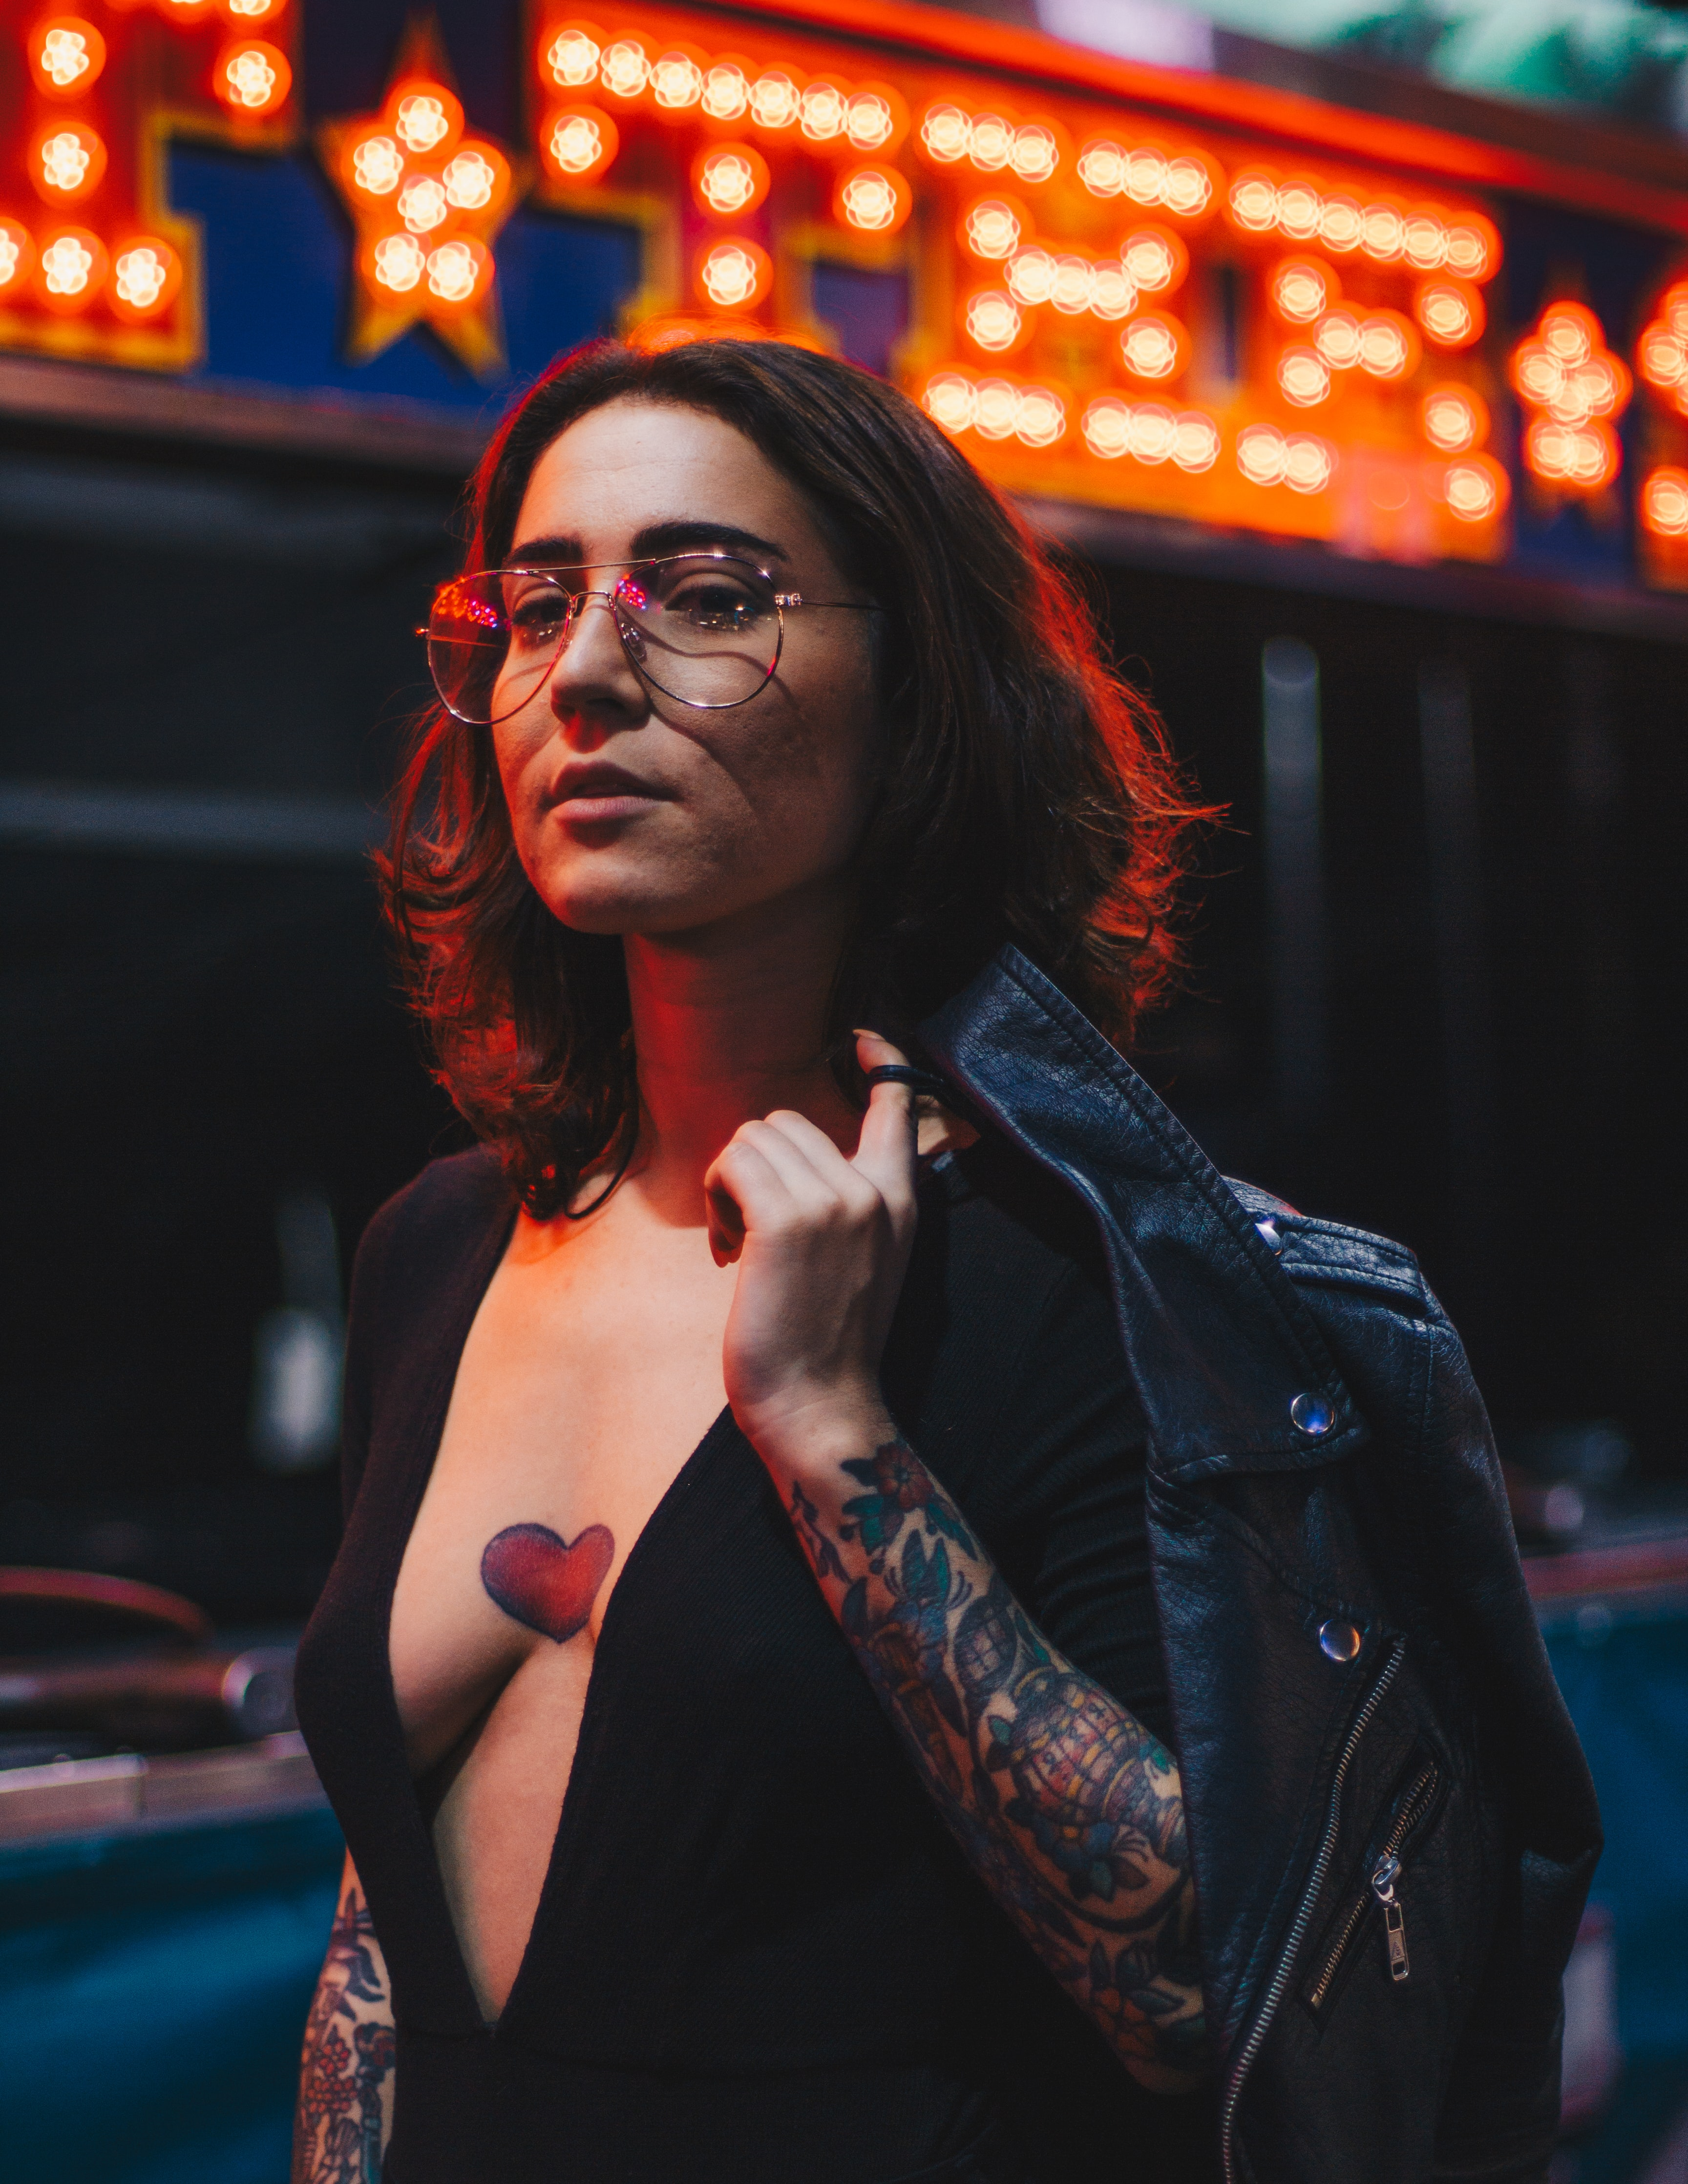 A tattooed woman in glasses with a heart inked on her exposed chest